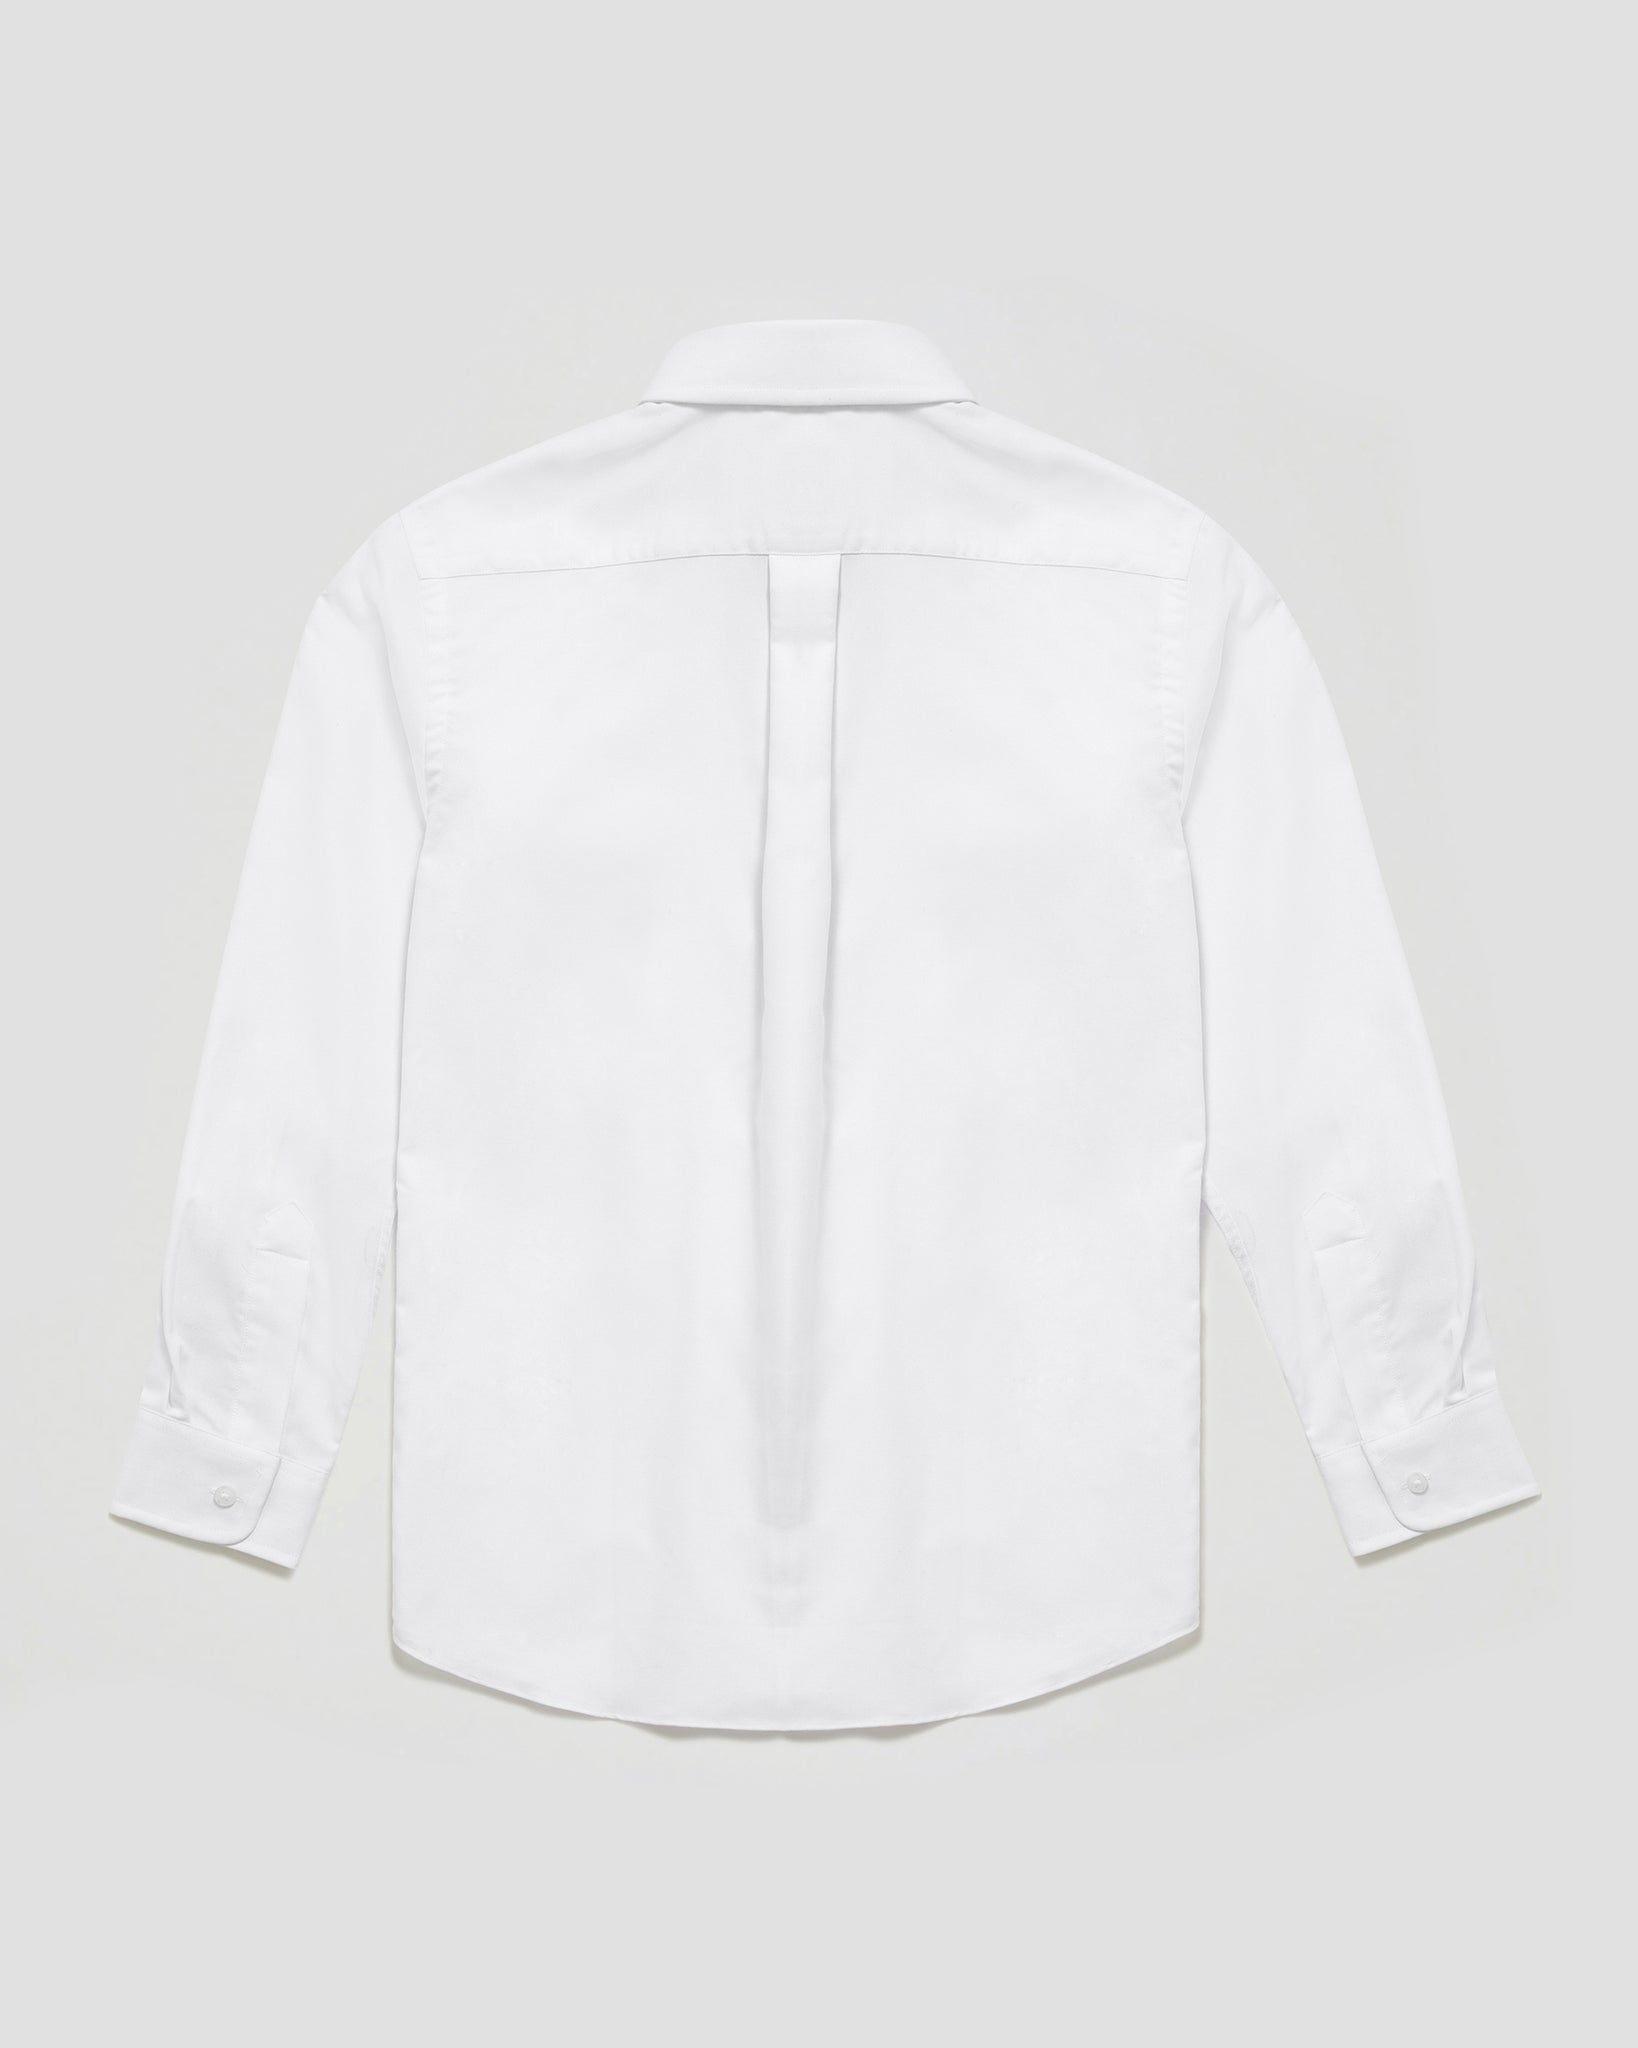 MagnaClick Solid Oxford Shirt - Kids